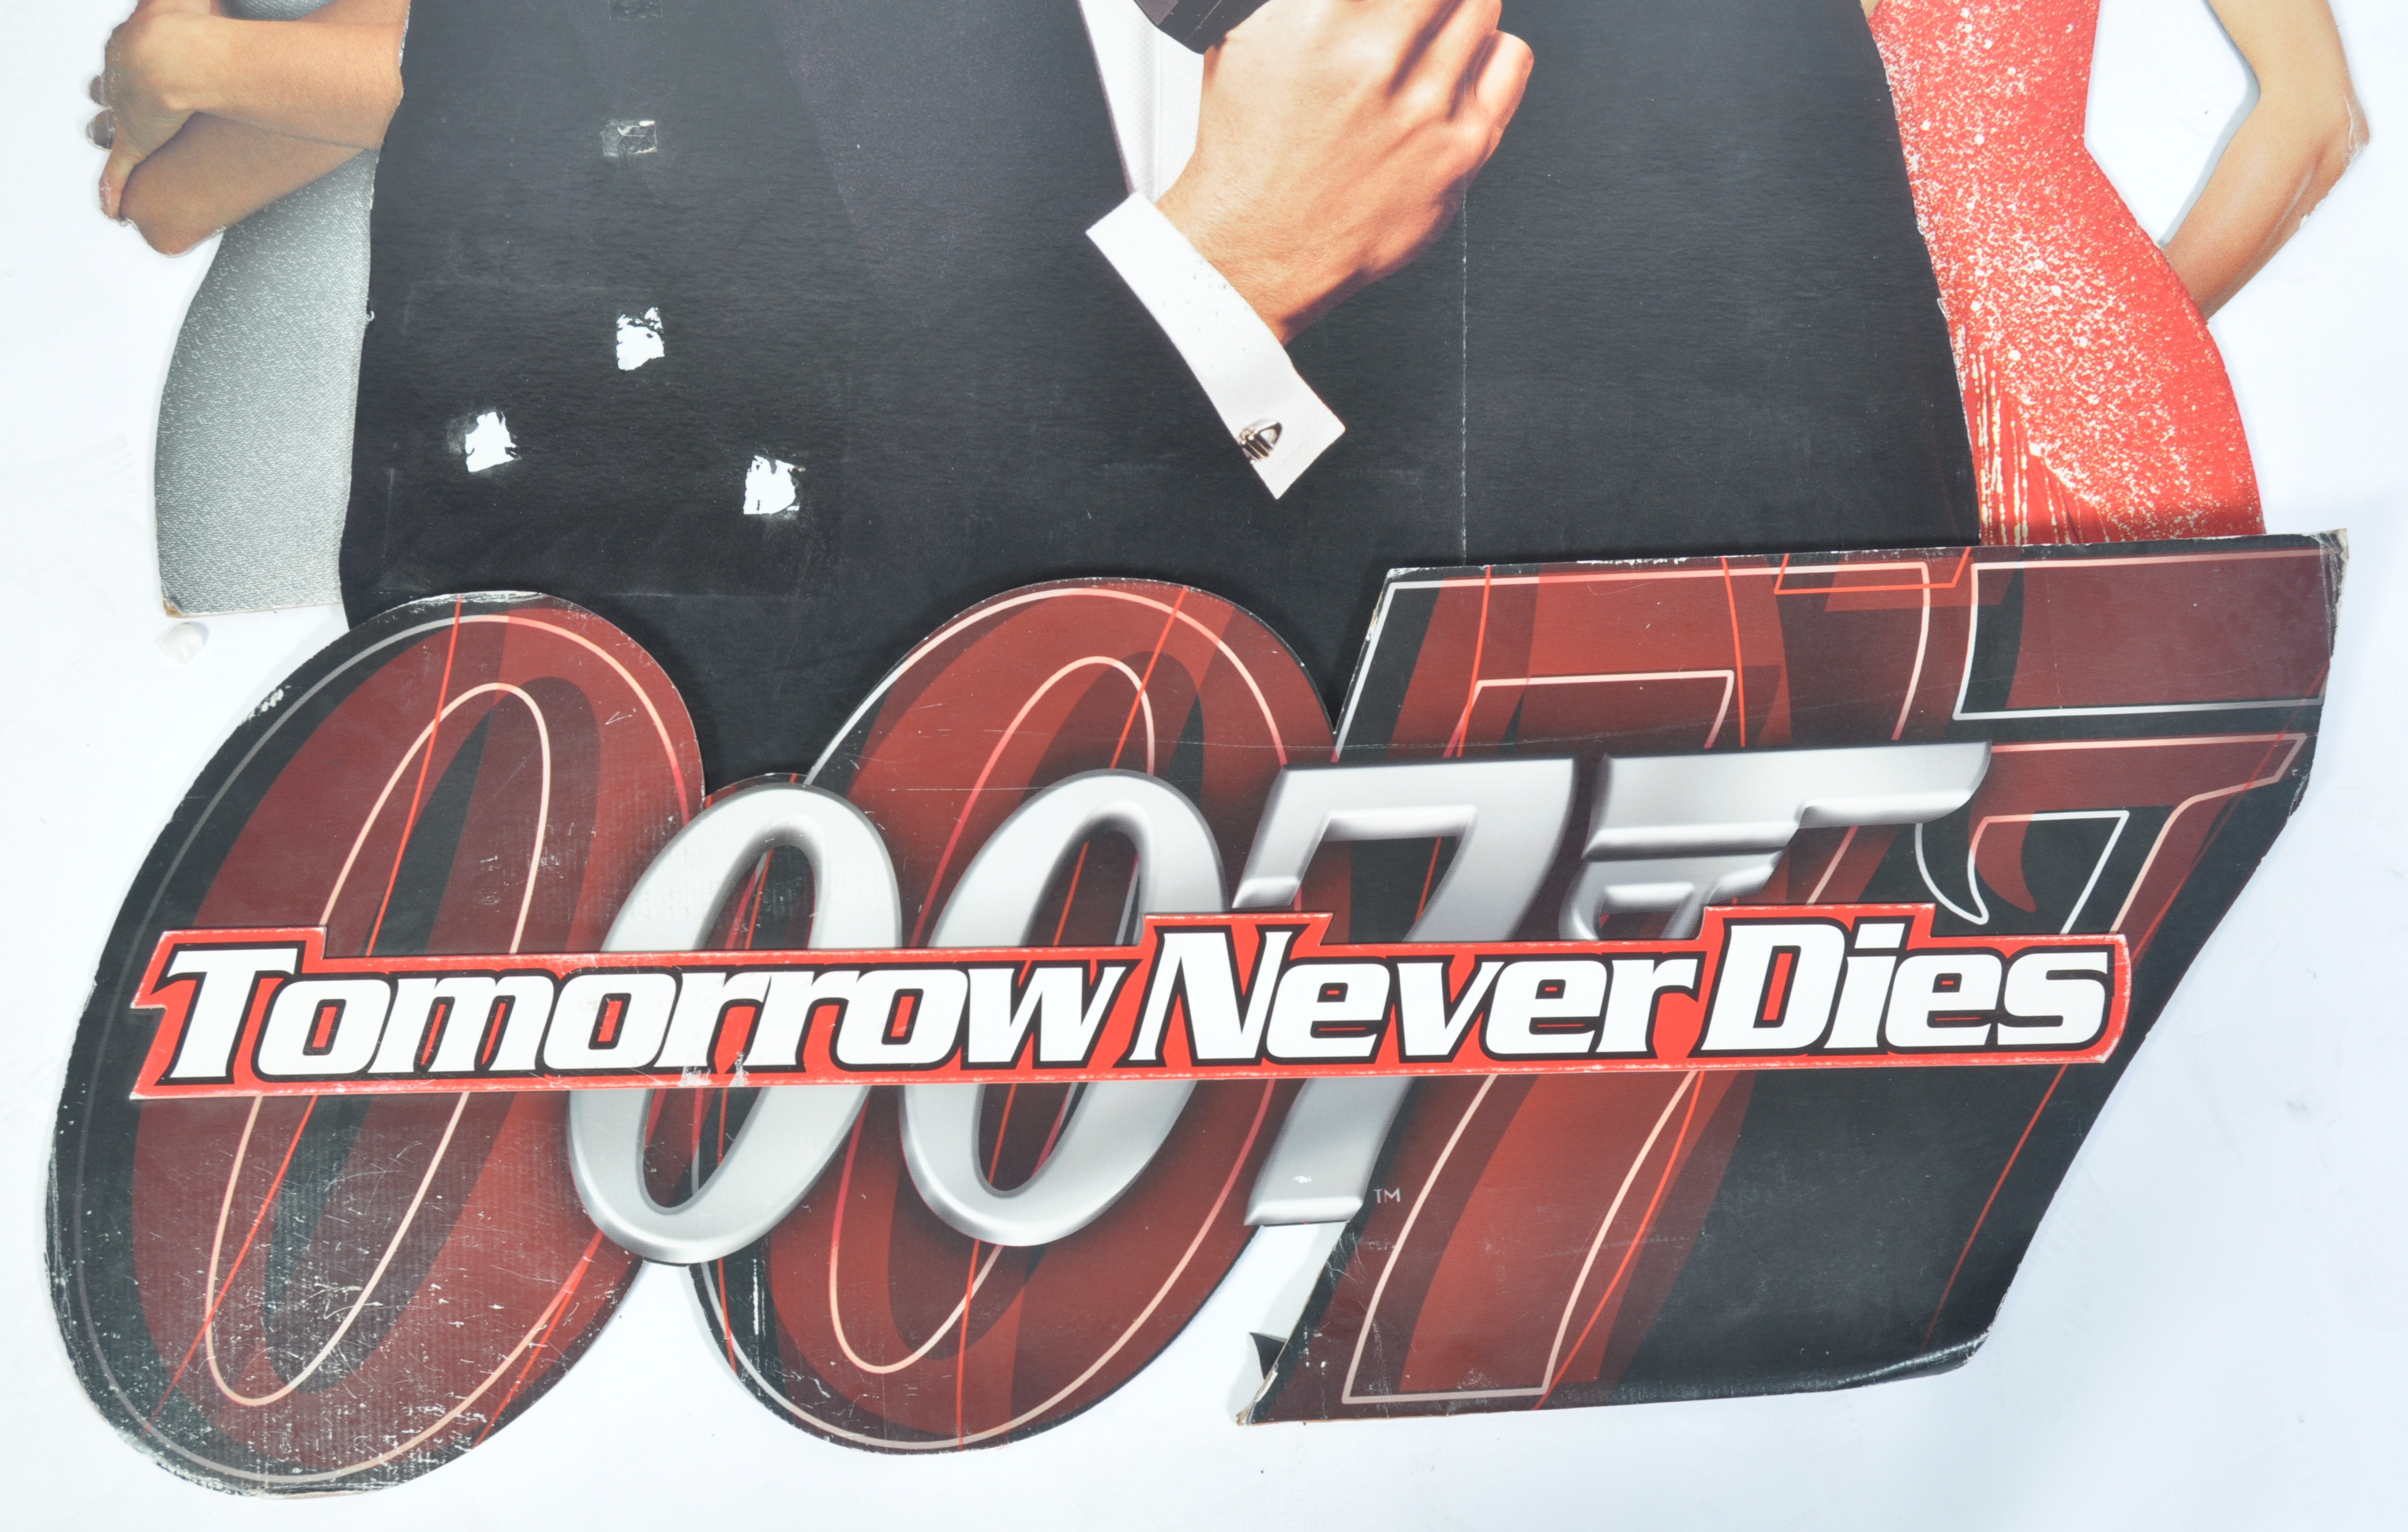 JAMES BOND TOMORROW NEVER DIES CARDBOARD CUT OUT P - Image 5 of 6